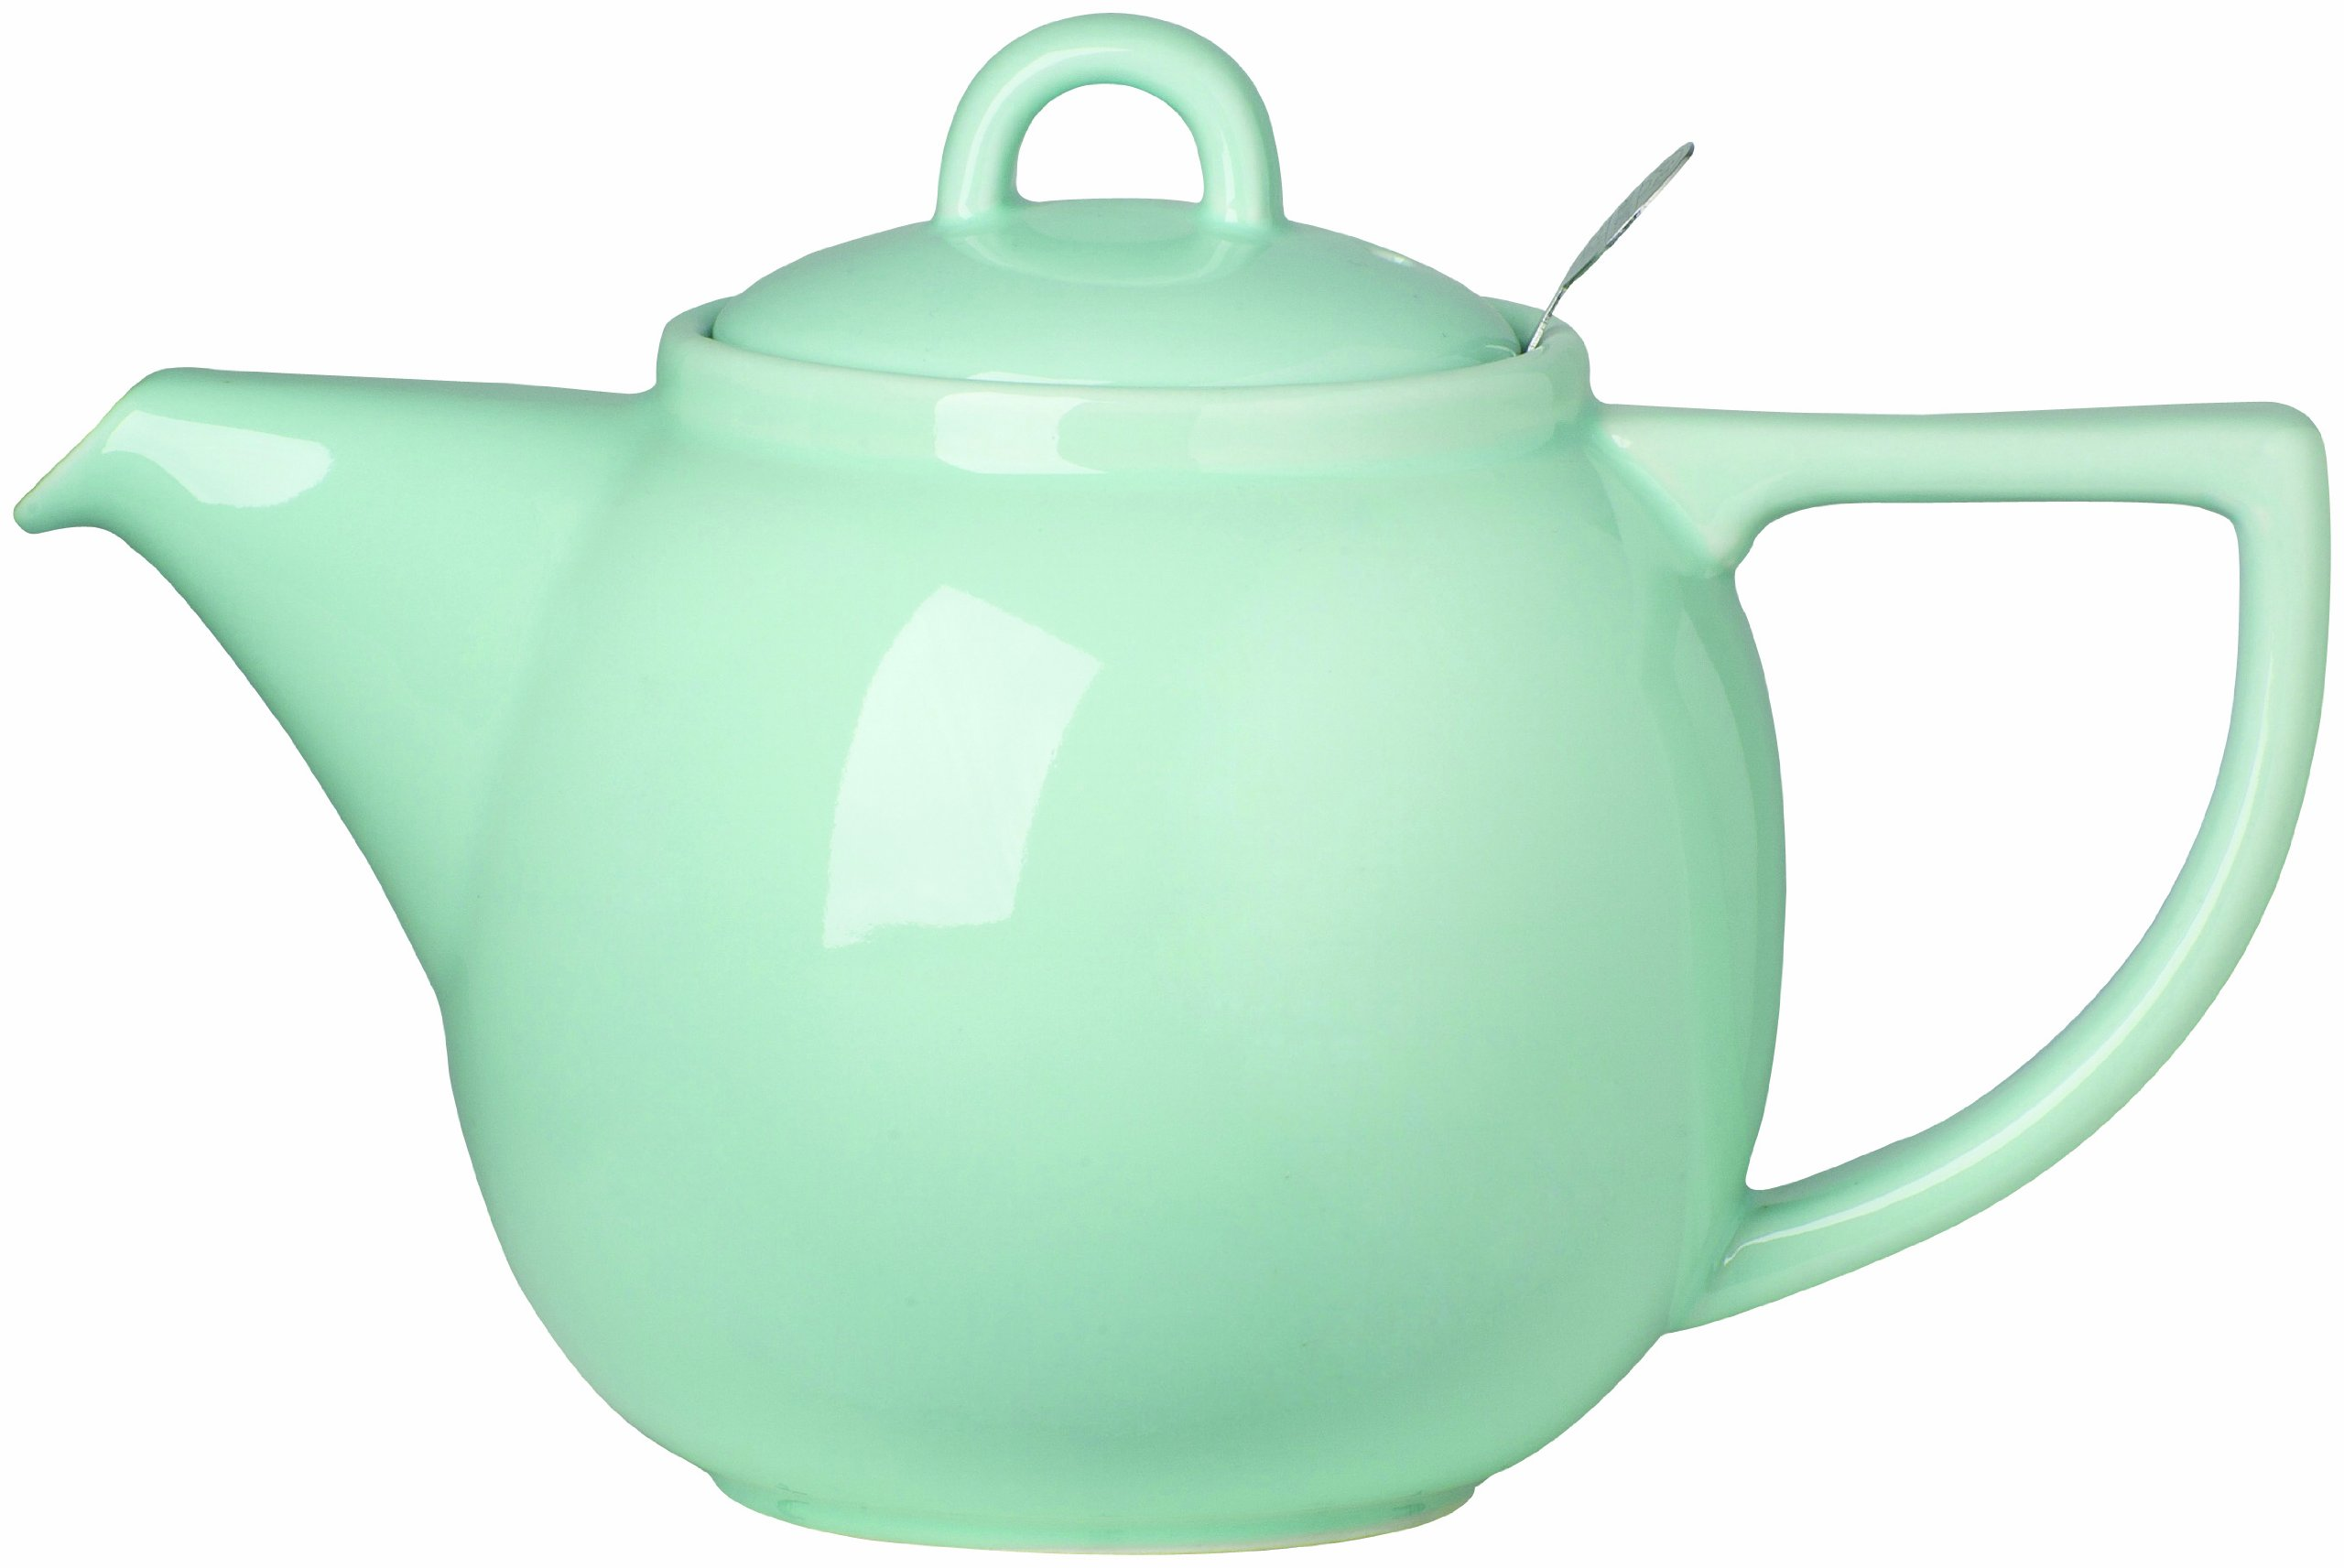 London Pottery Geo Teapot with Stainless Steel Infuser, 4 Cup Capacity, Aqua Blue